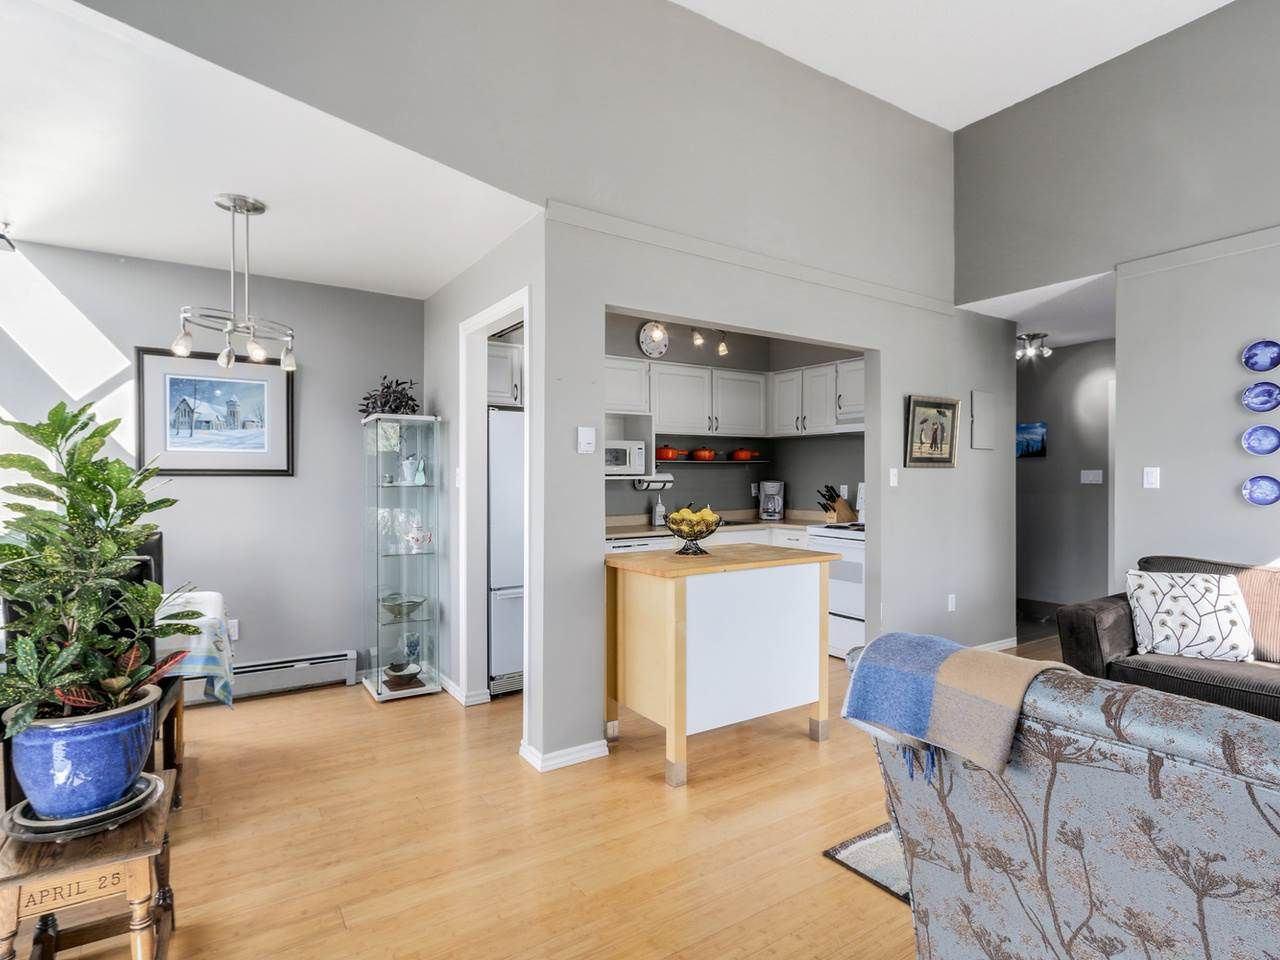 Photo 10: Photos: P3 2885 SPRUCE Street in Vancouver: Fairview VW Condo for sale (Vancouver West)  : MLS®# R2052789